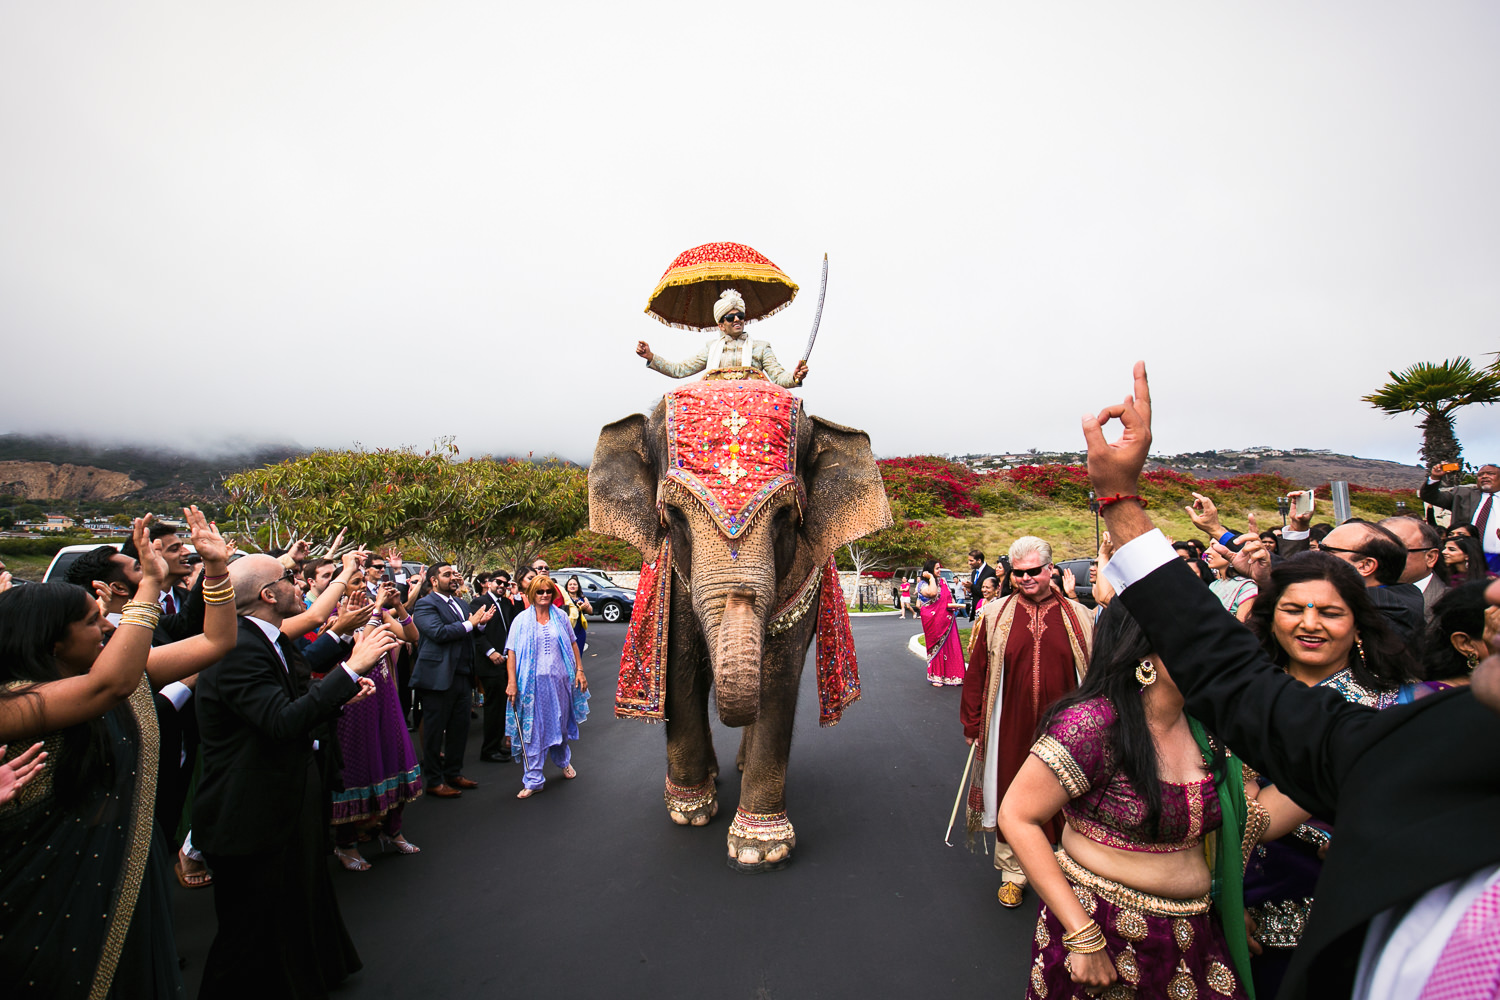 South Asian Trump National Golf Club Wedding - Groom Riding an Elephant